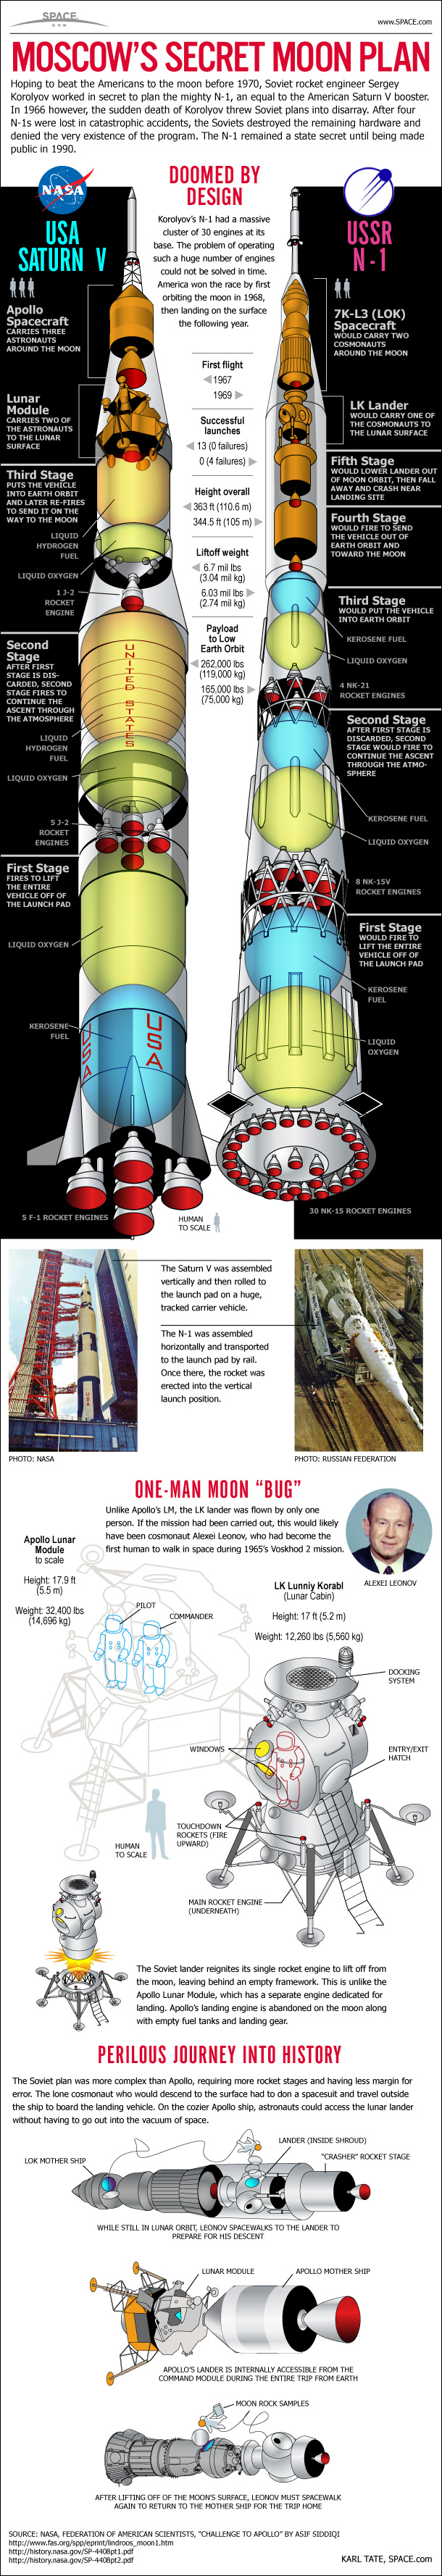 Moscow's Secret Moon Plan - The N-1 Rocket